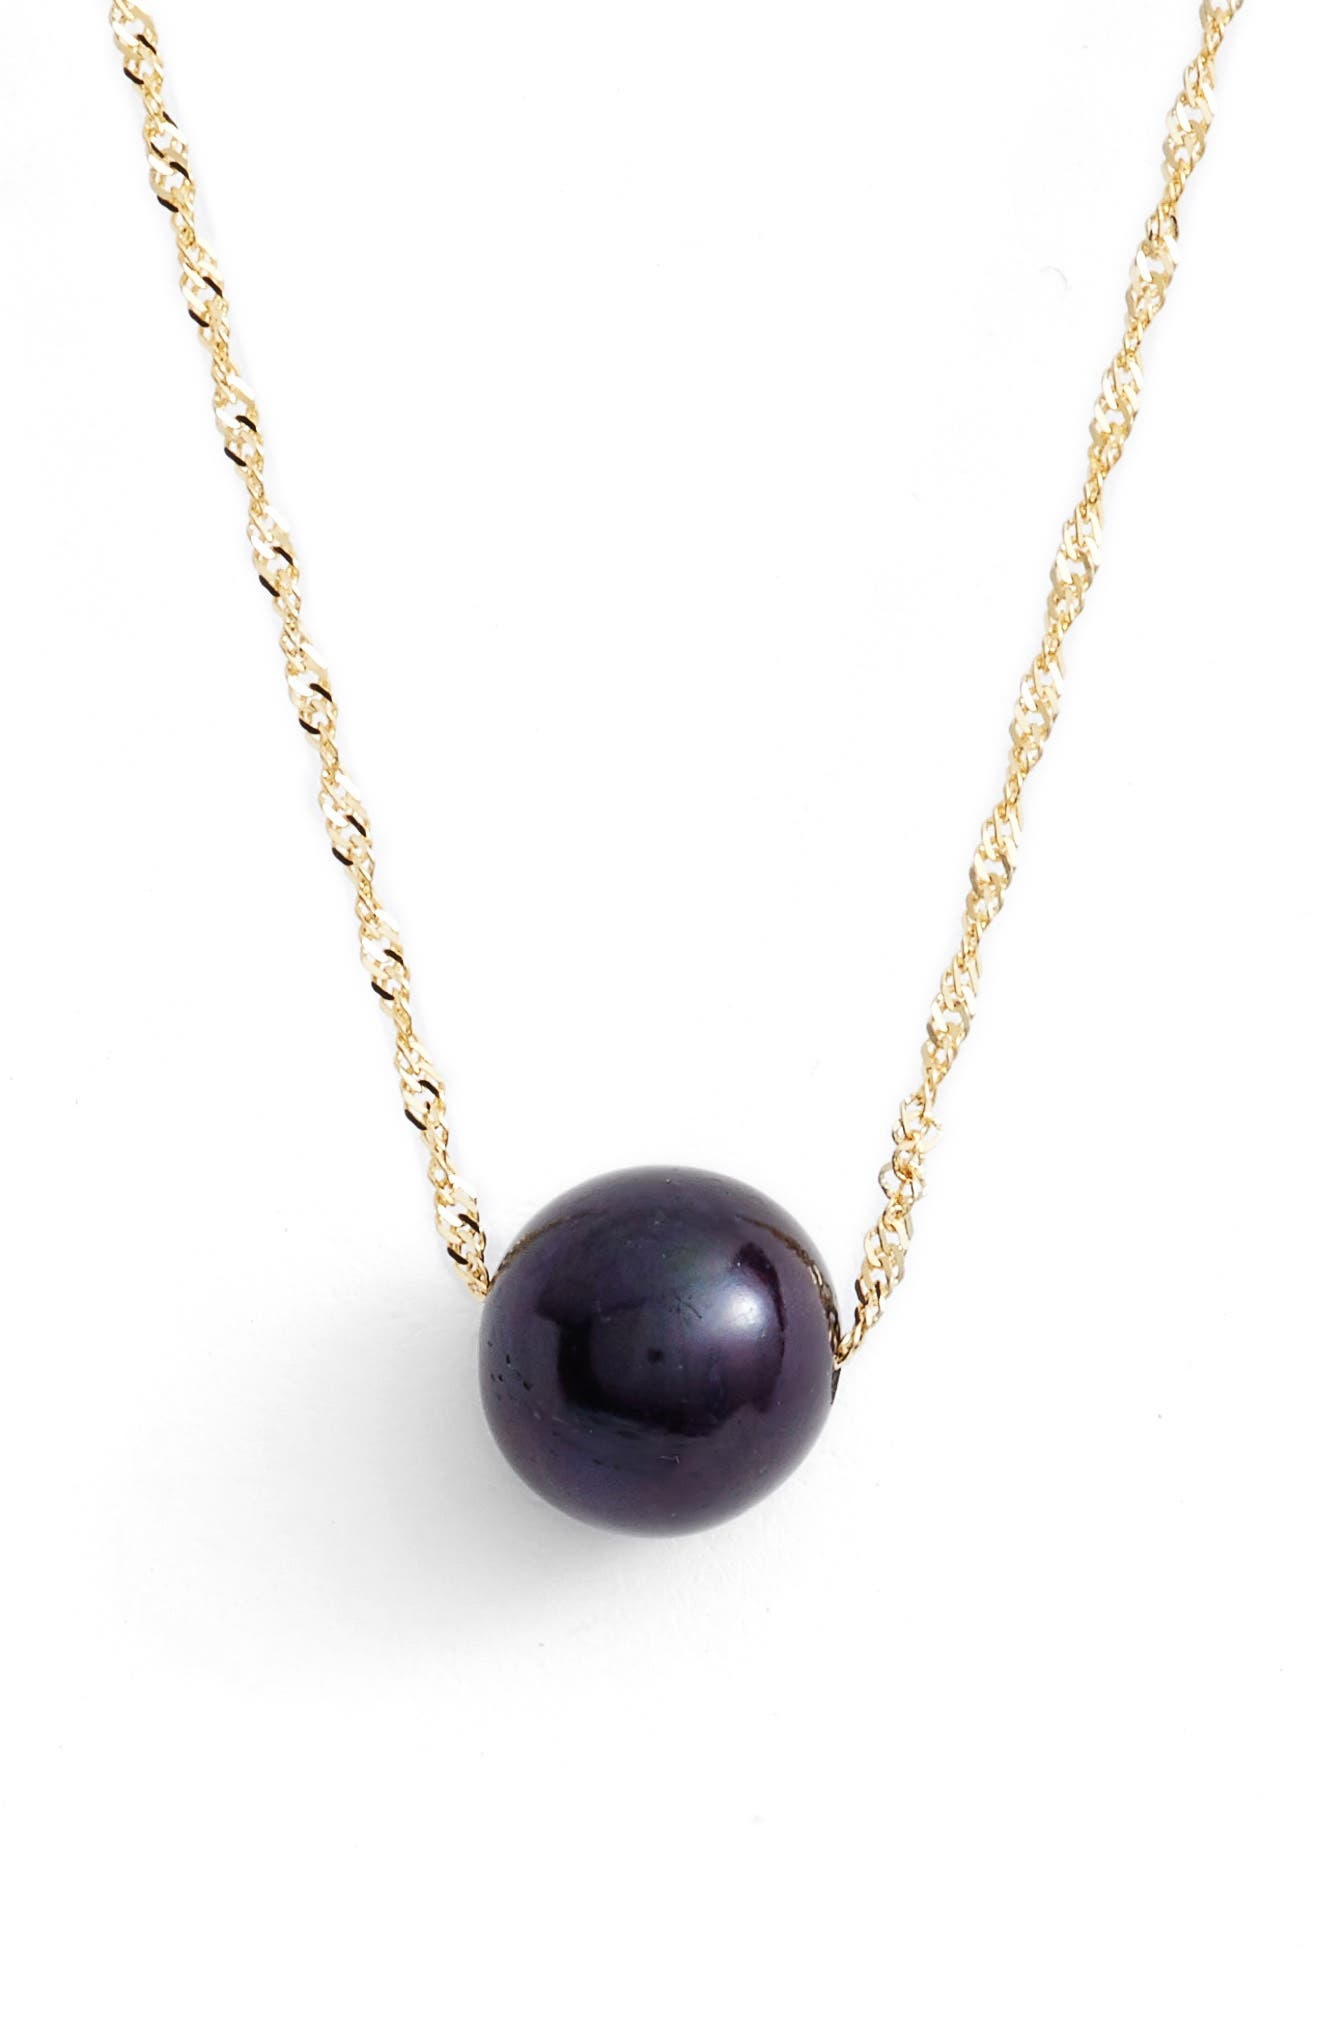 Solitaire Cultured Pearl Pendant Necklace,                         Main,                         color, Yellow Gold/ Black Pearl